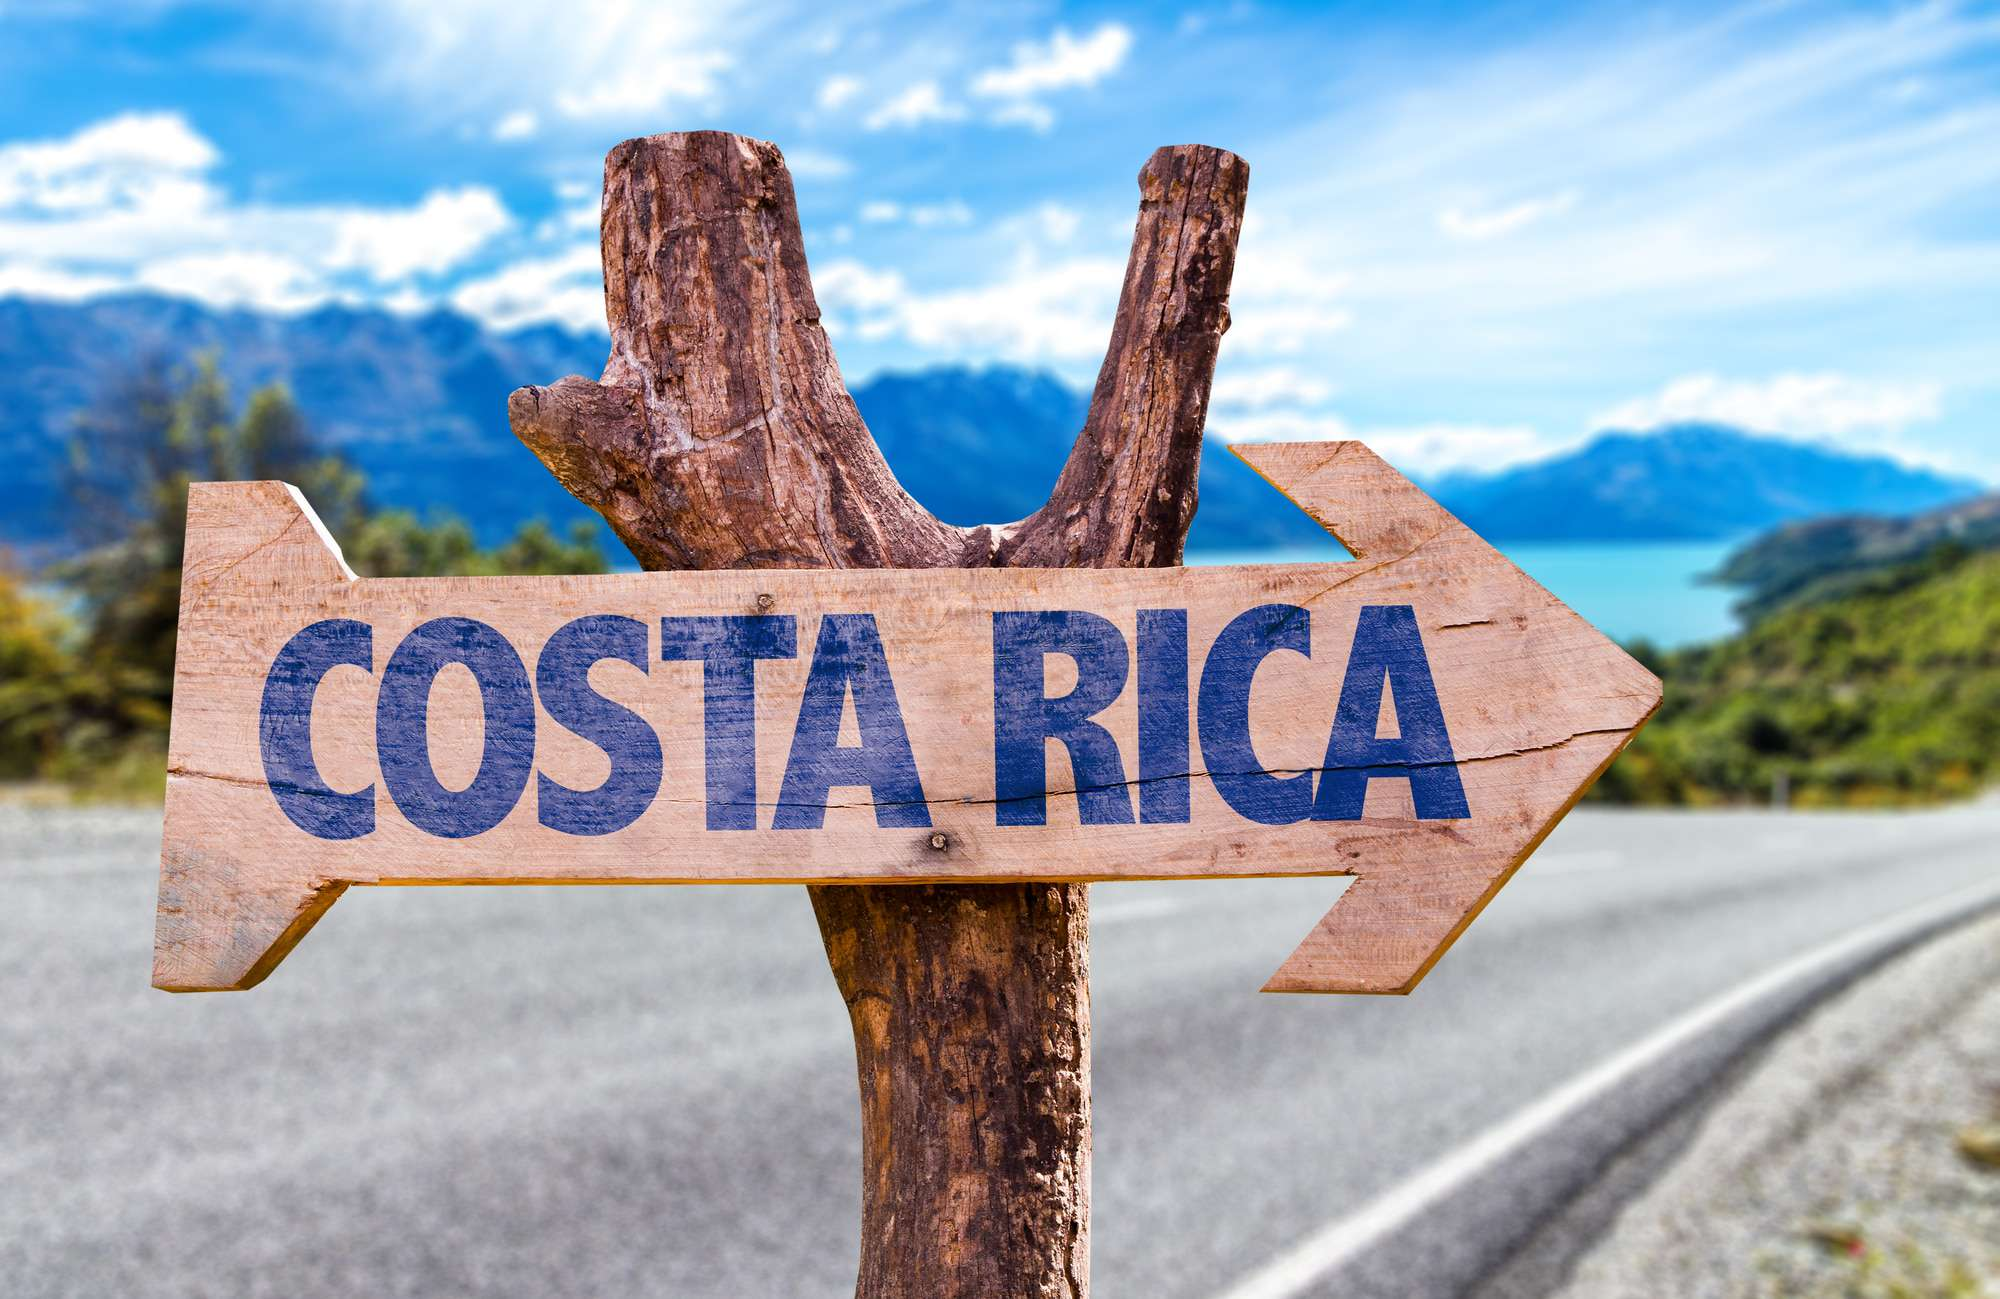 The biggest offshore sportsbook in Costa Rica